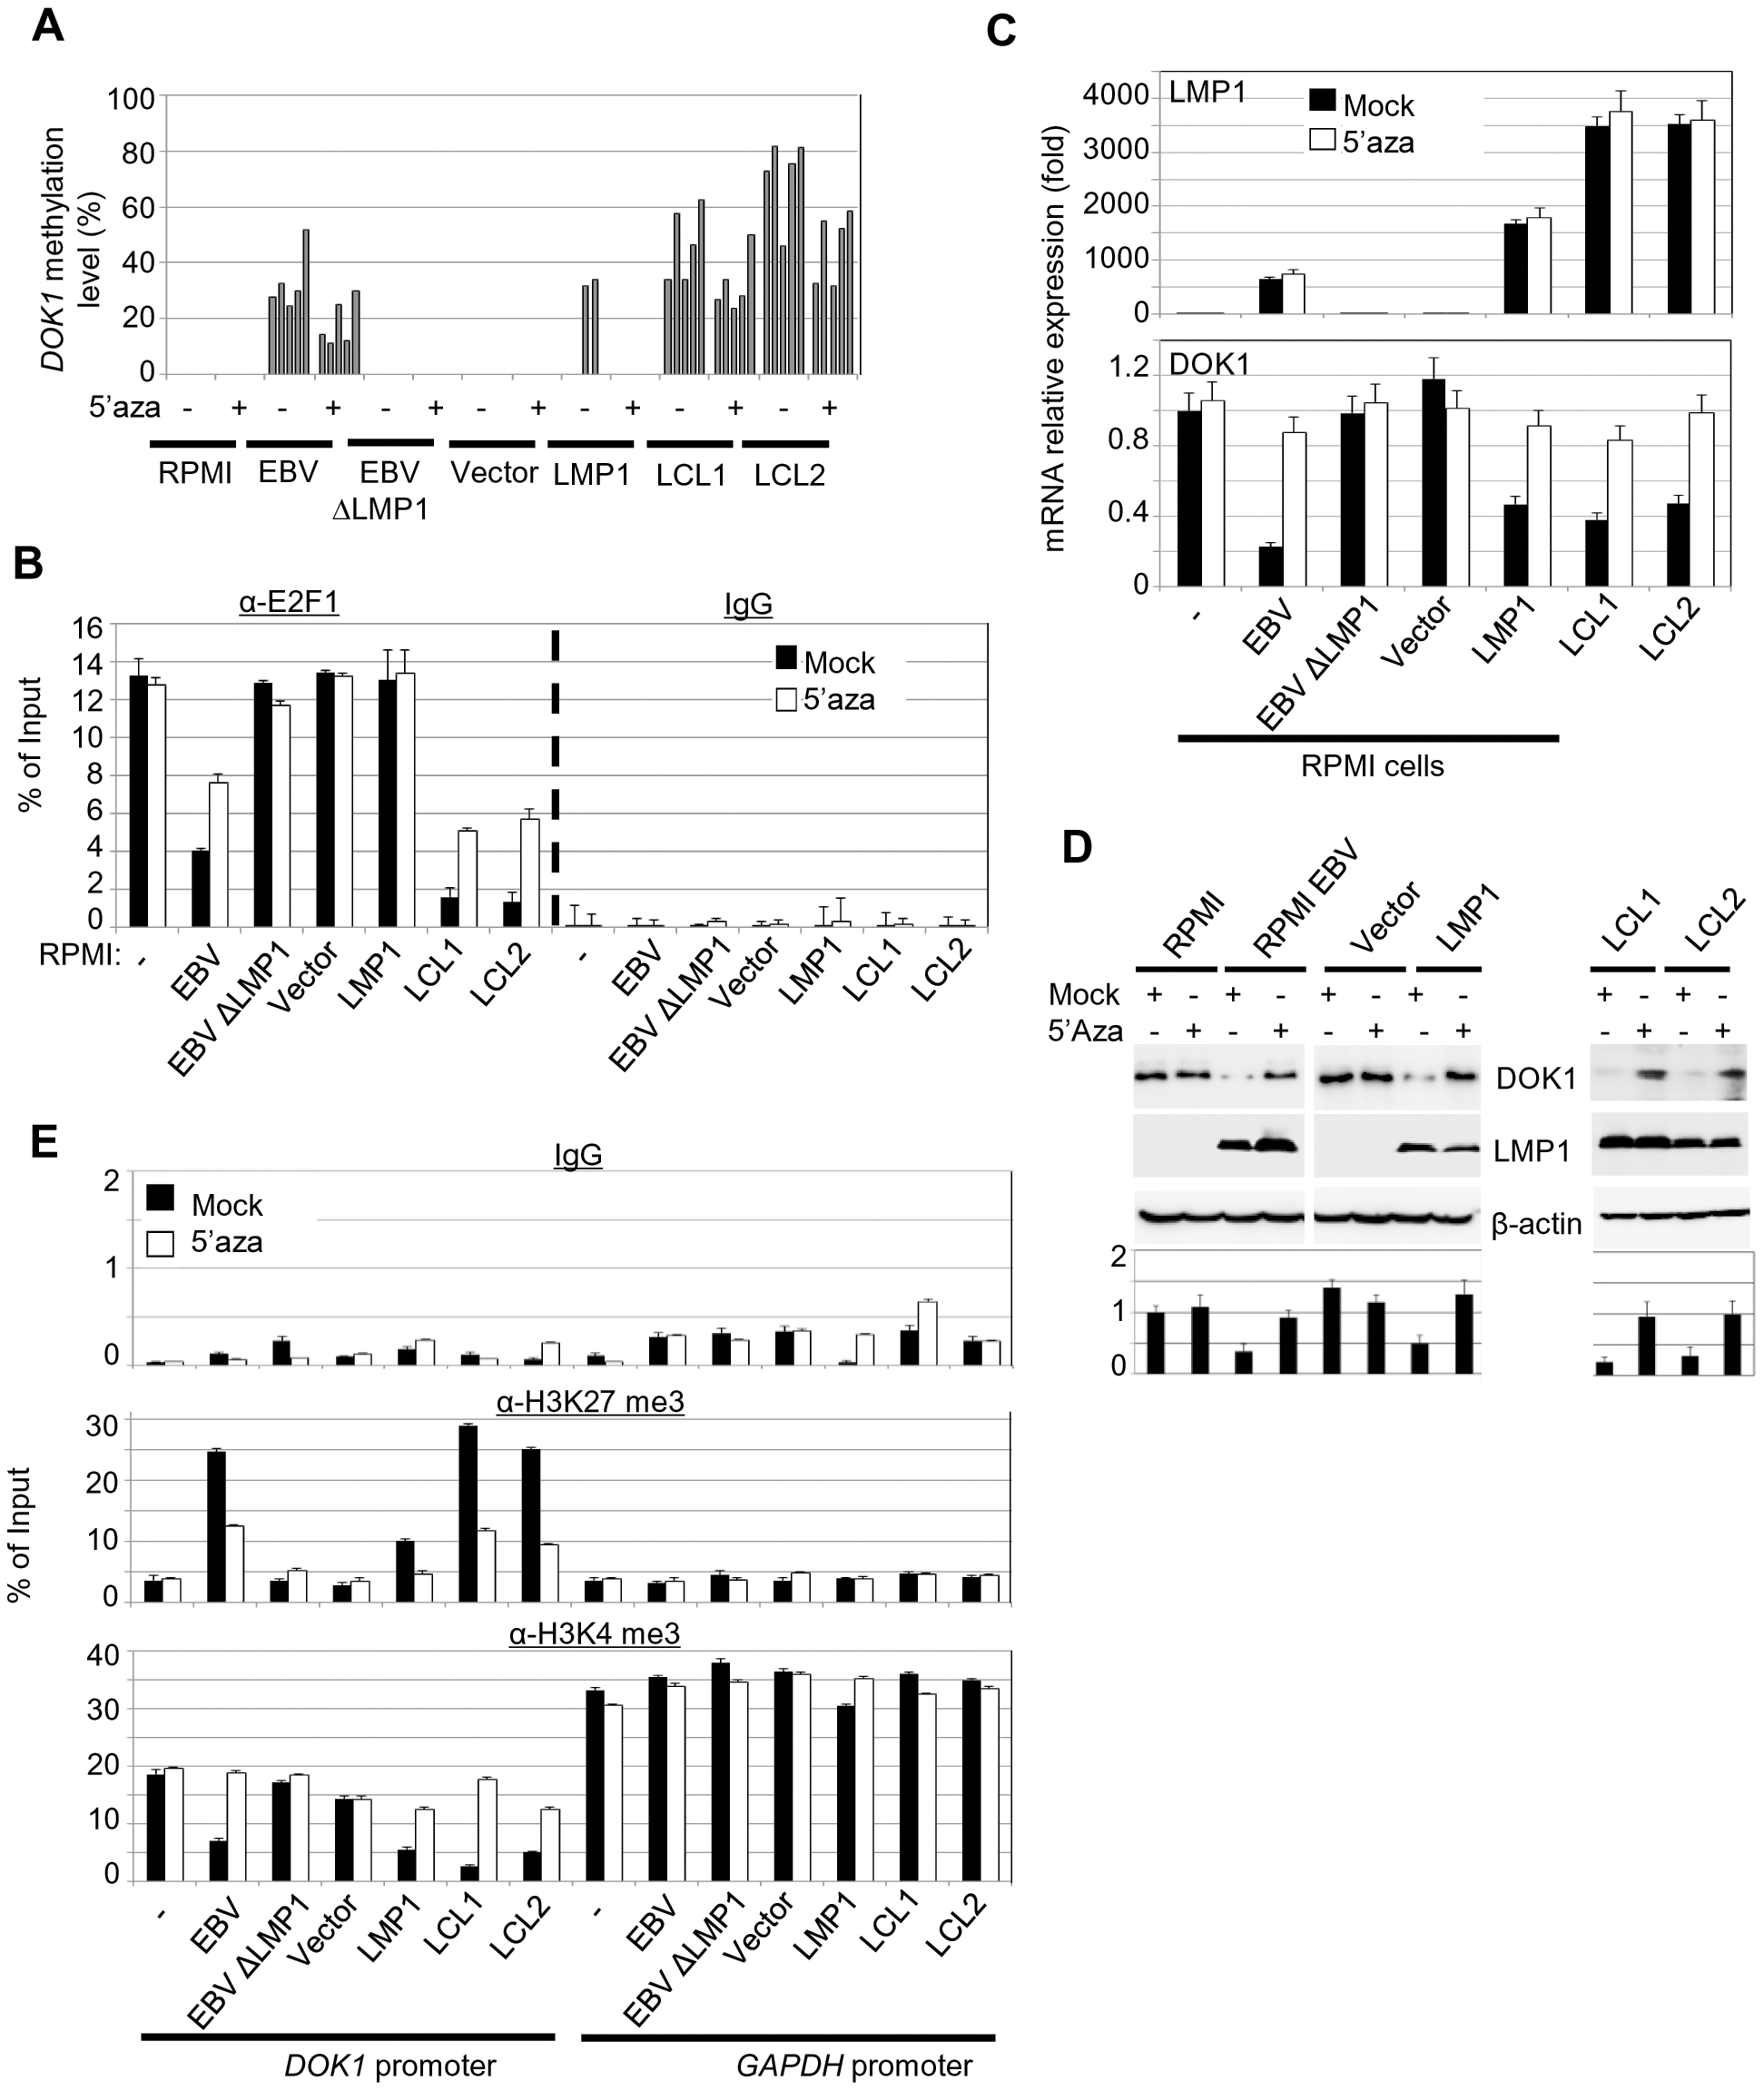 5-Aza treatment rescue <i>DOK1</i> expression in EBV infected cells.